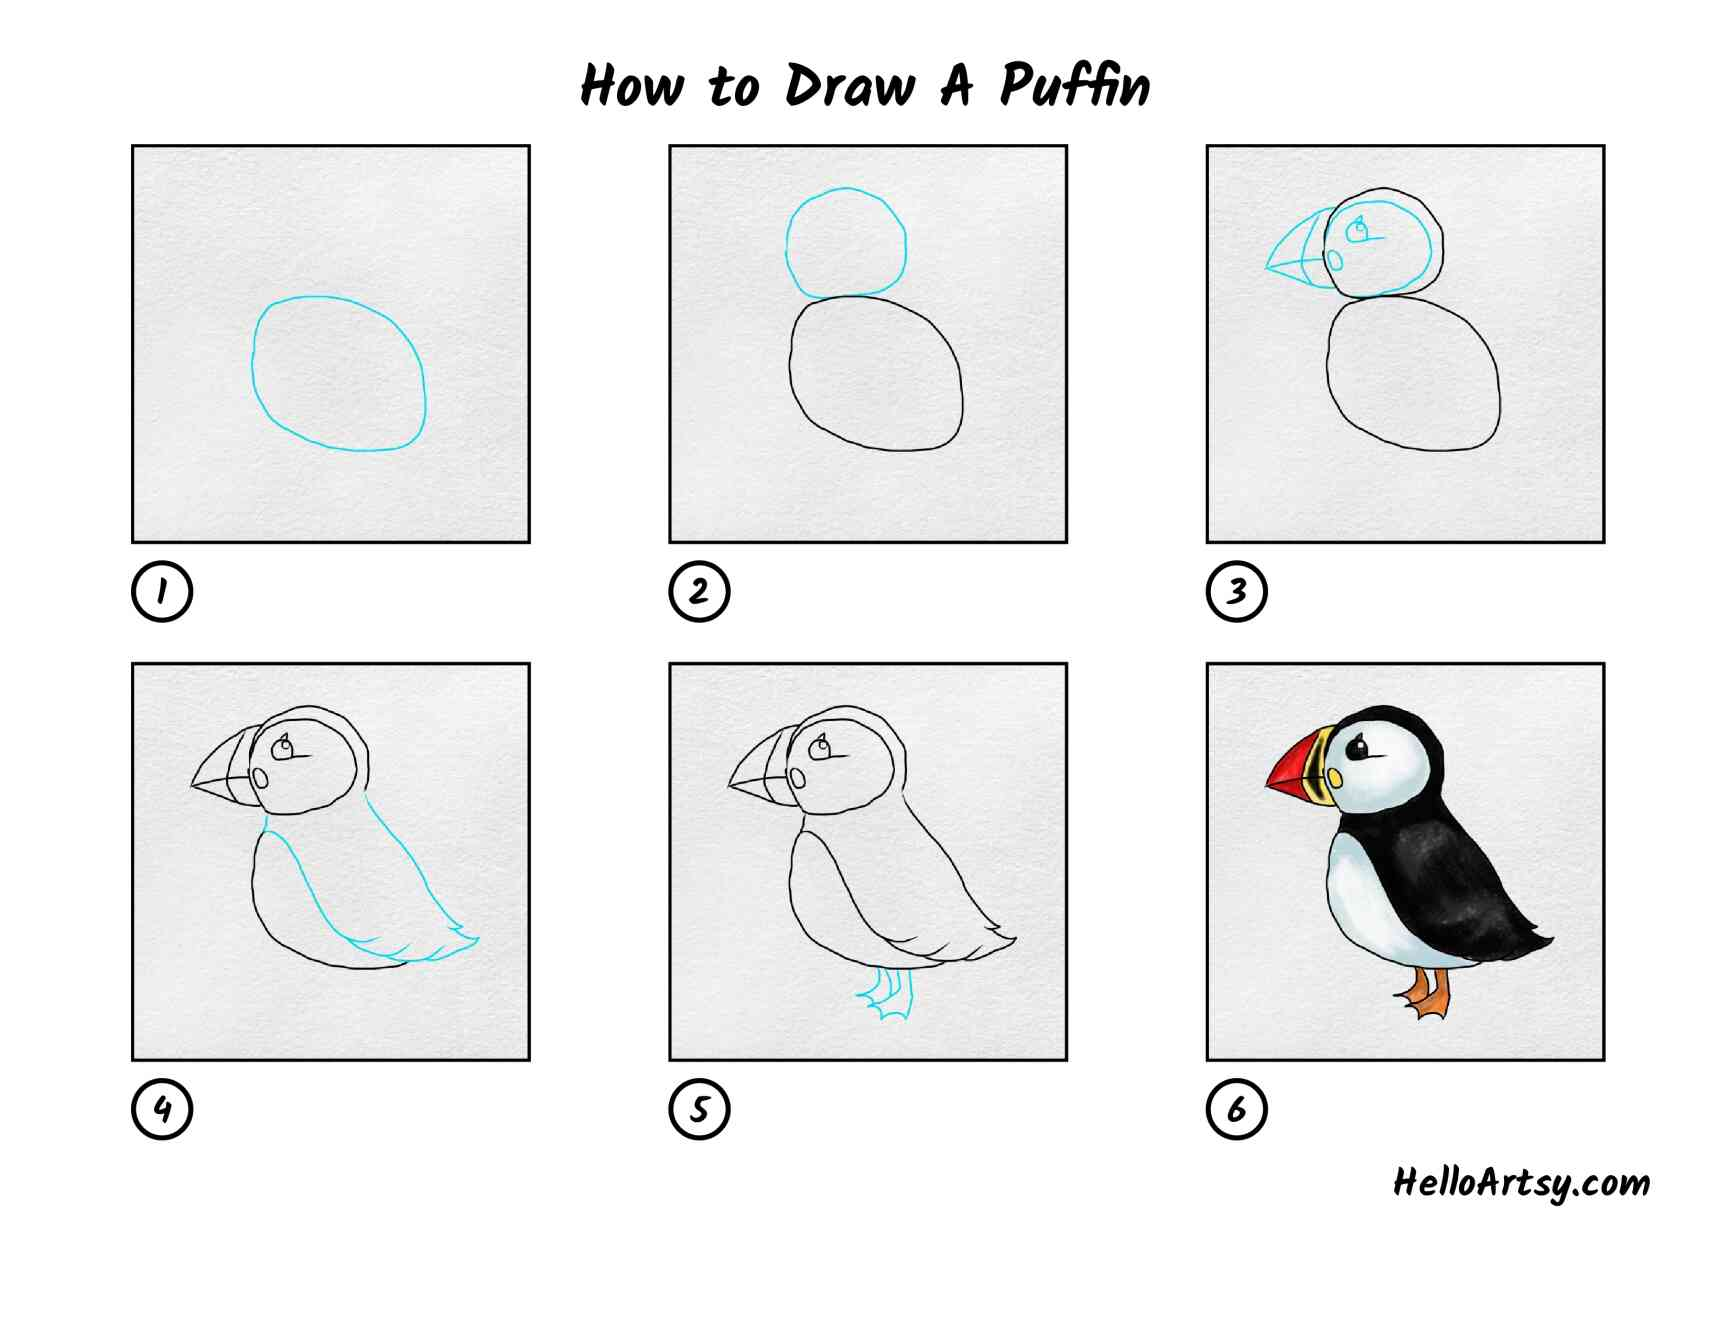 How To Draw Puffin: All Steps